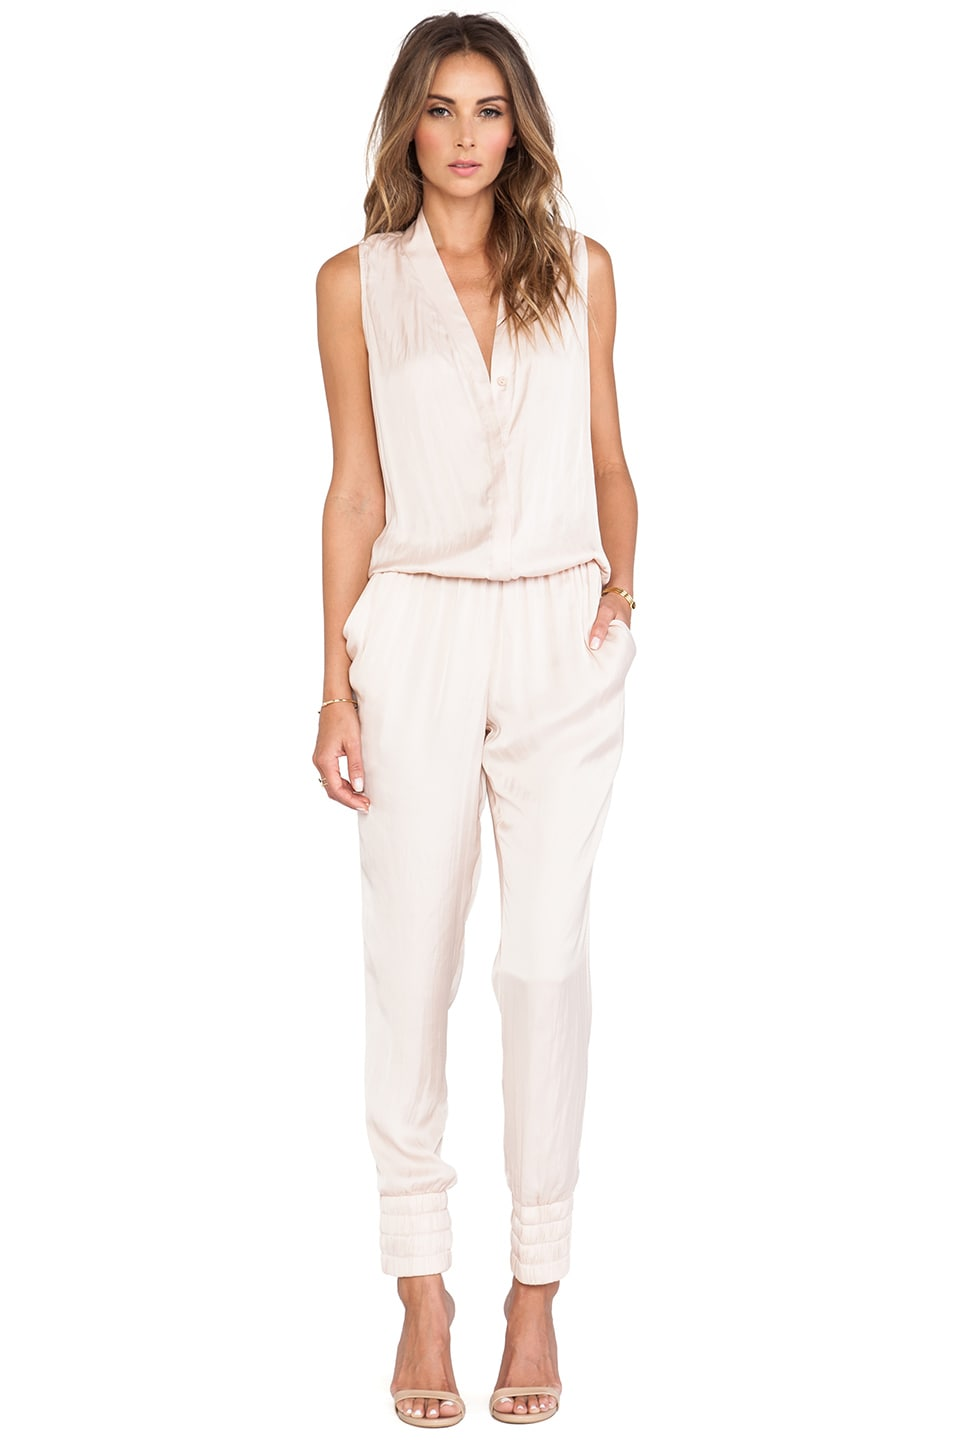 Alexis Saint Thomas Jumpsuit in Petale